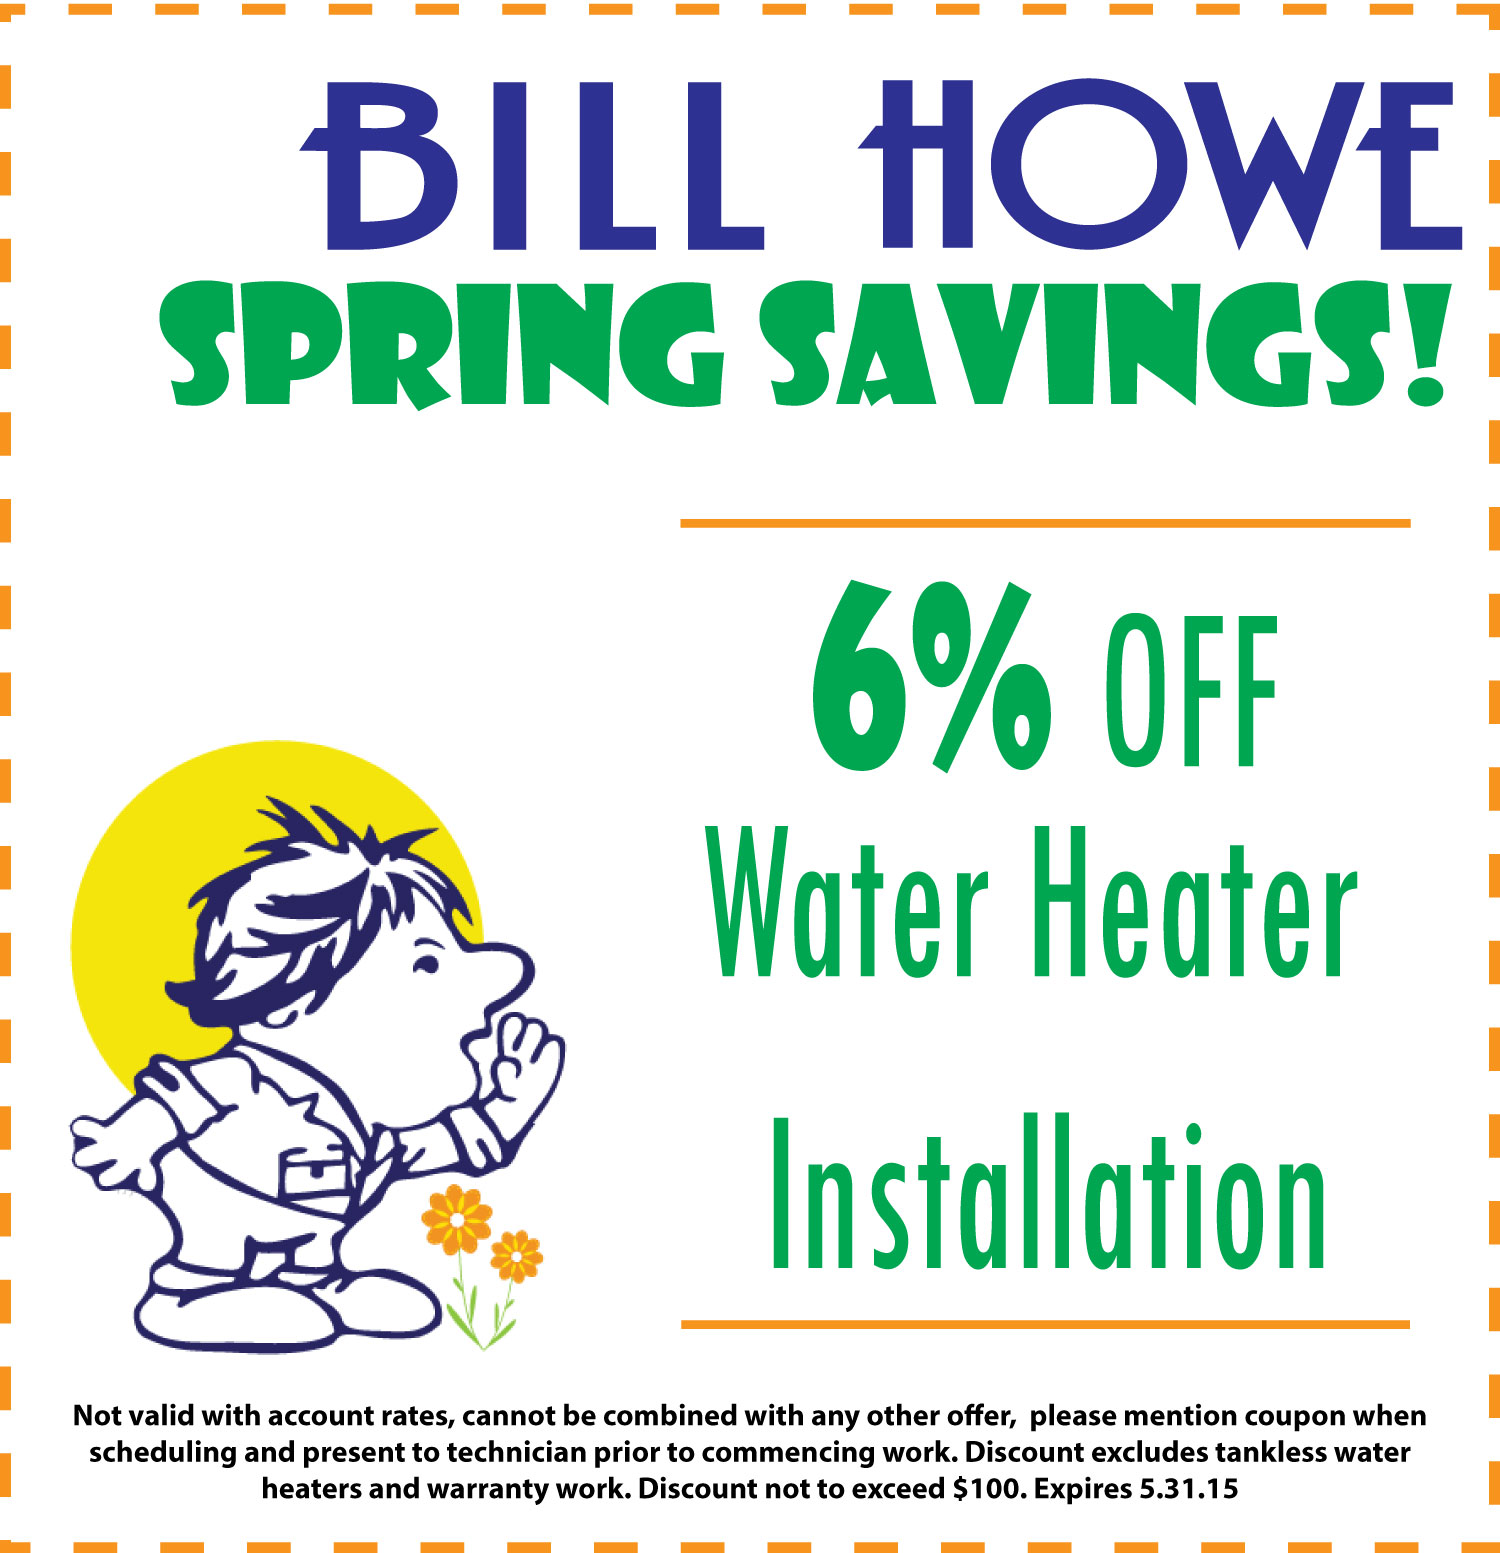 rebates for offers time a bill plumbing howe lennox watch limited youtube